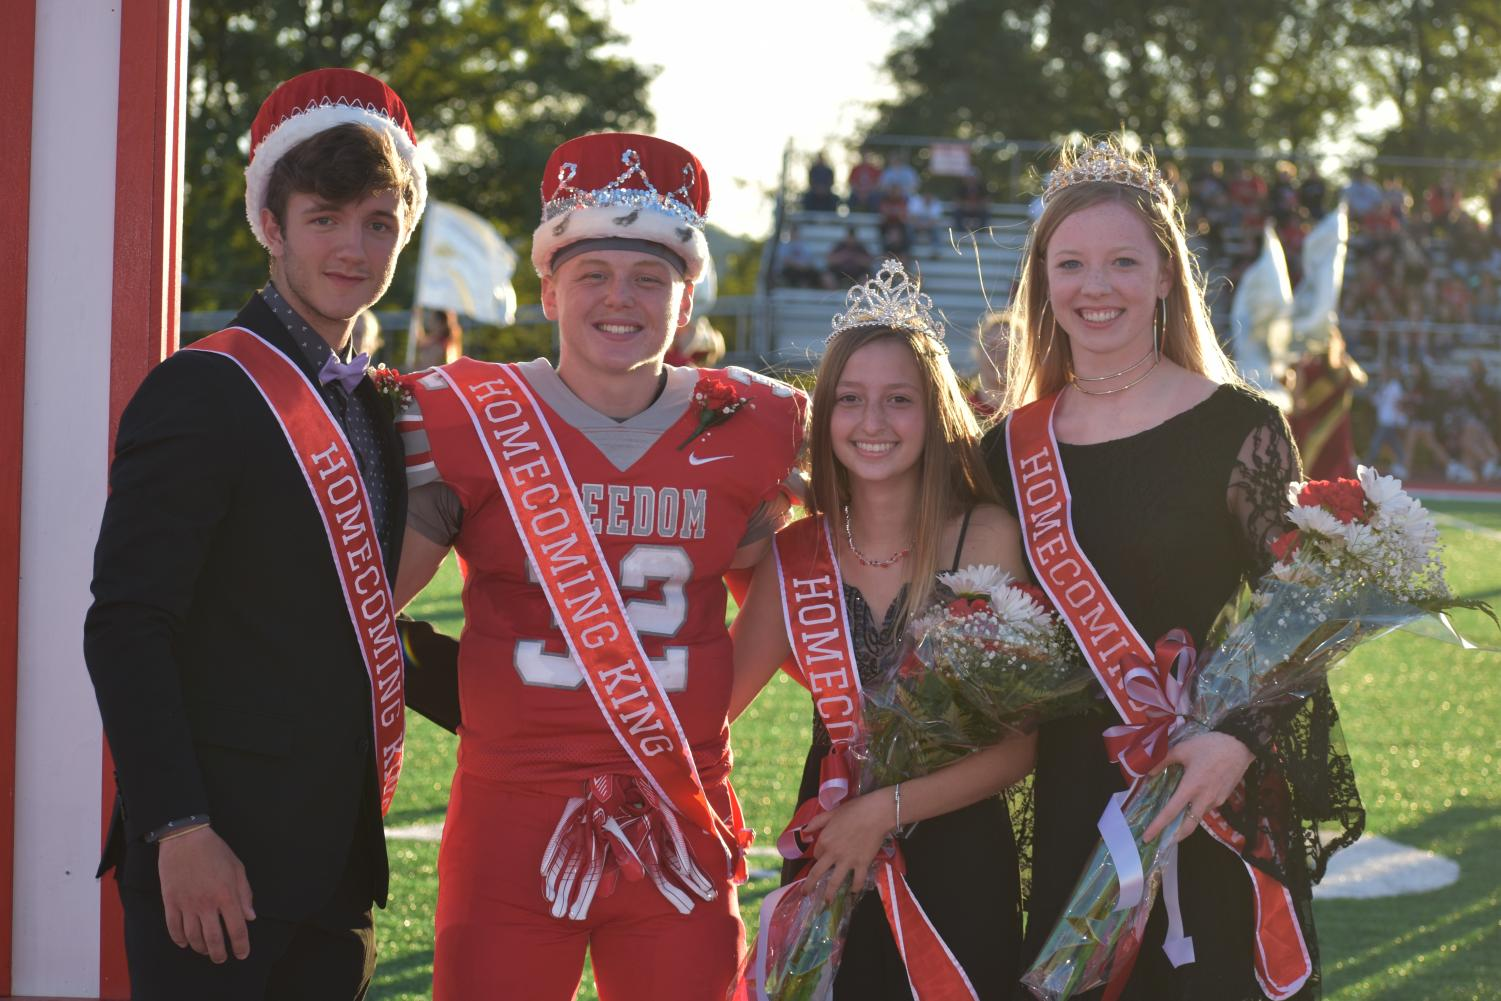 Last year's Homecoming King and Queen Riley Adams and Melissa Keith crown Maxwell Ujhazy and Baylee Stewart as this year's Homecoming King and Queen.